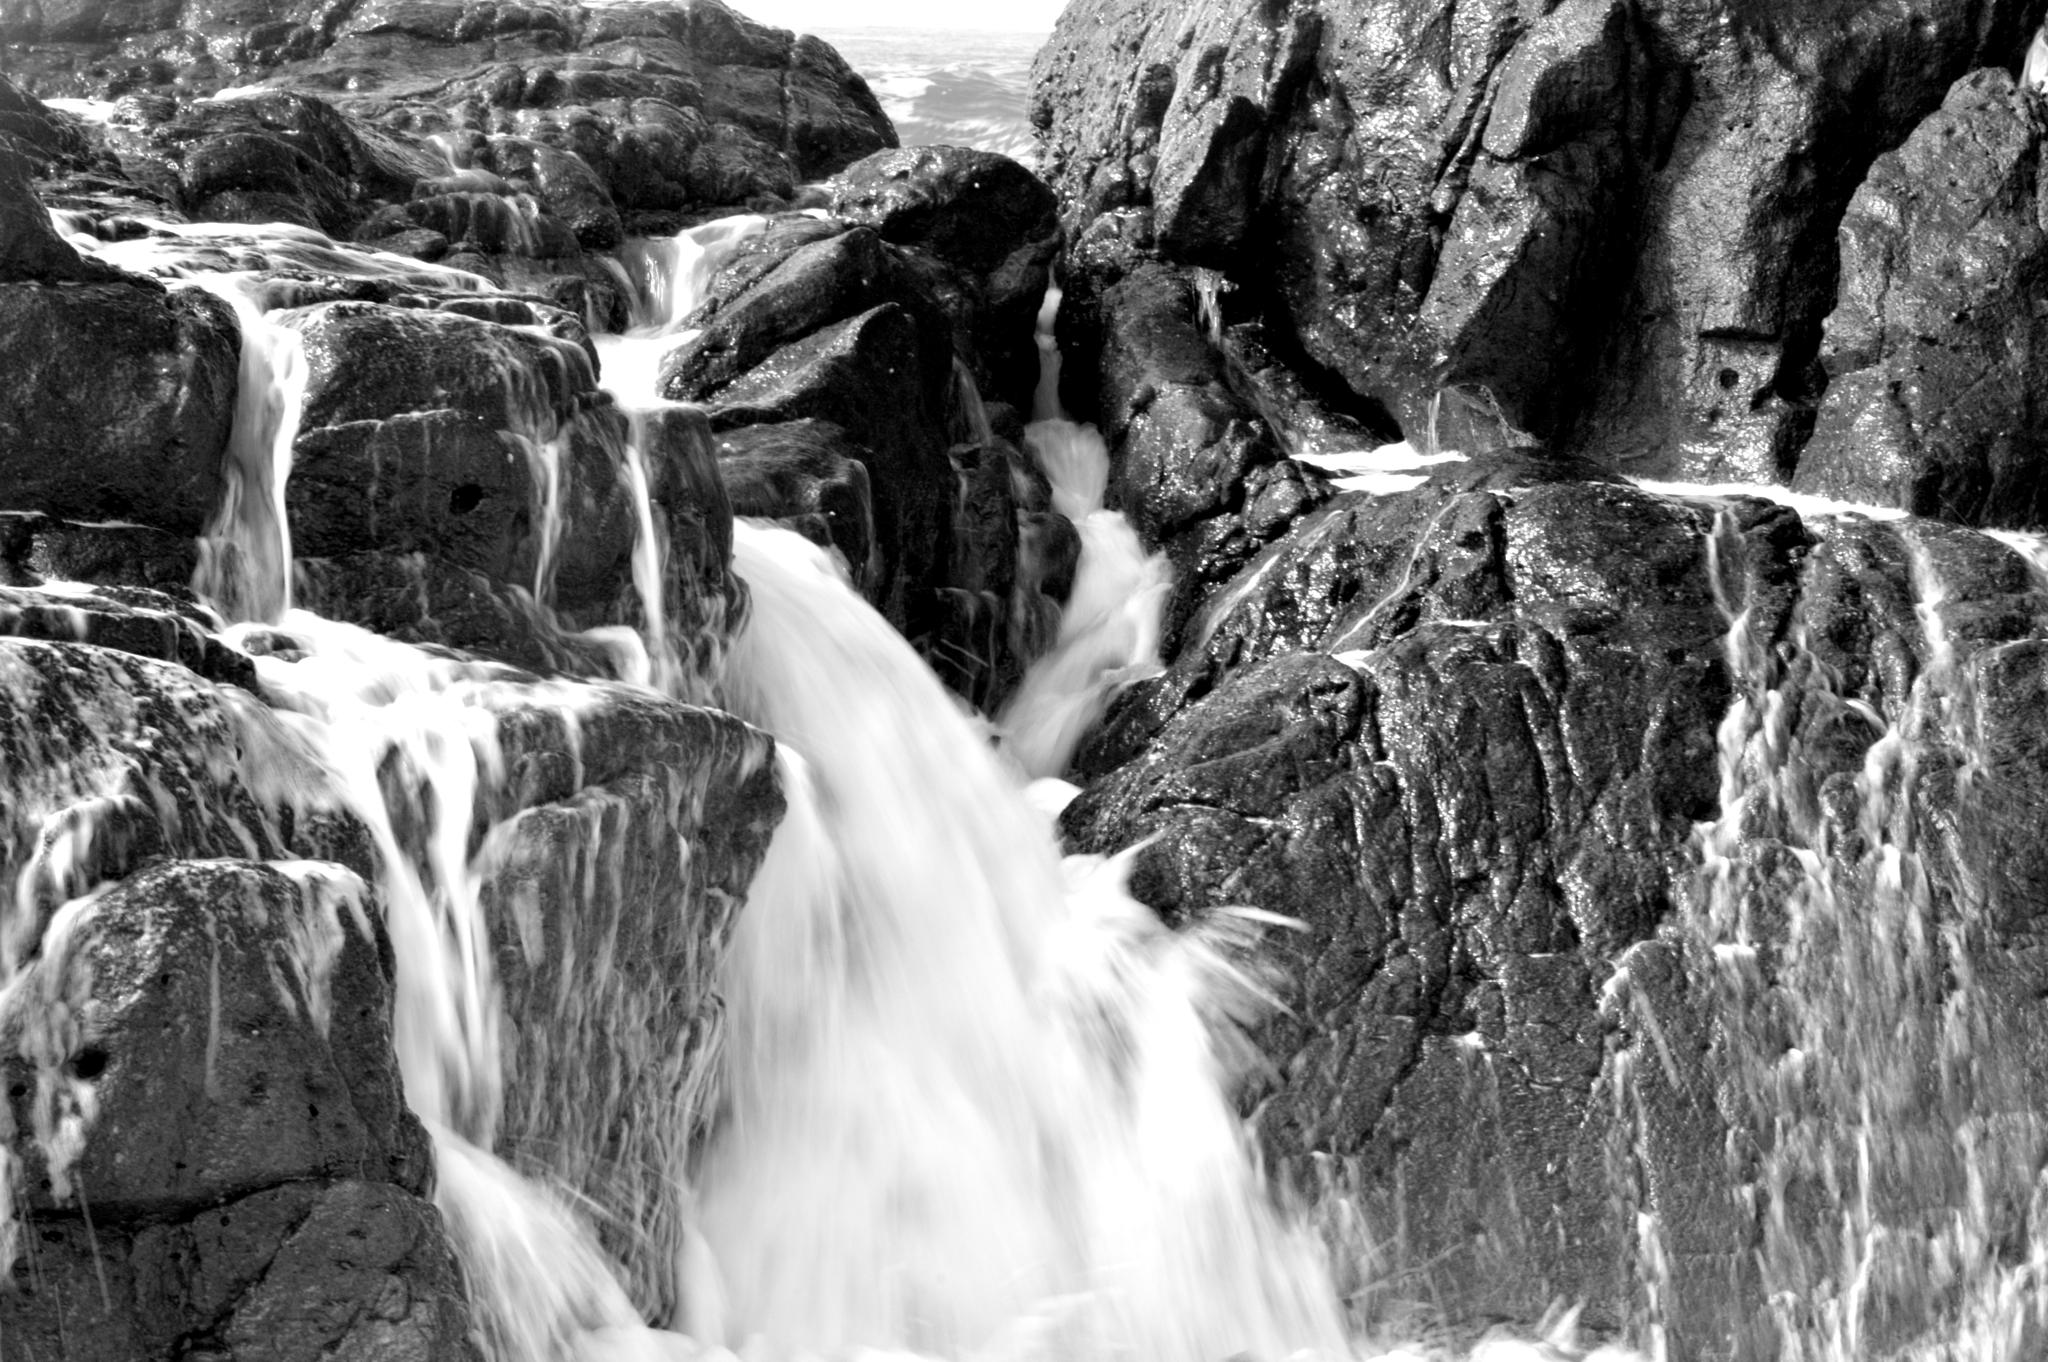 Rocks & water 1 by Ives Martinez